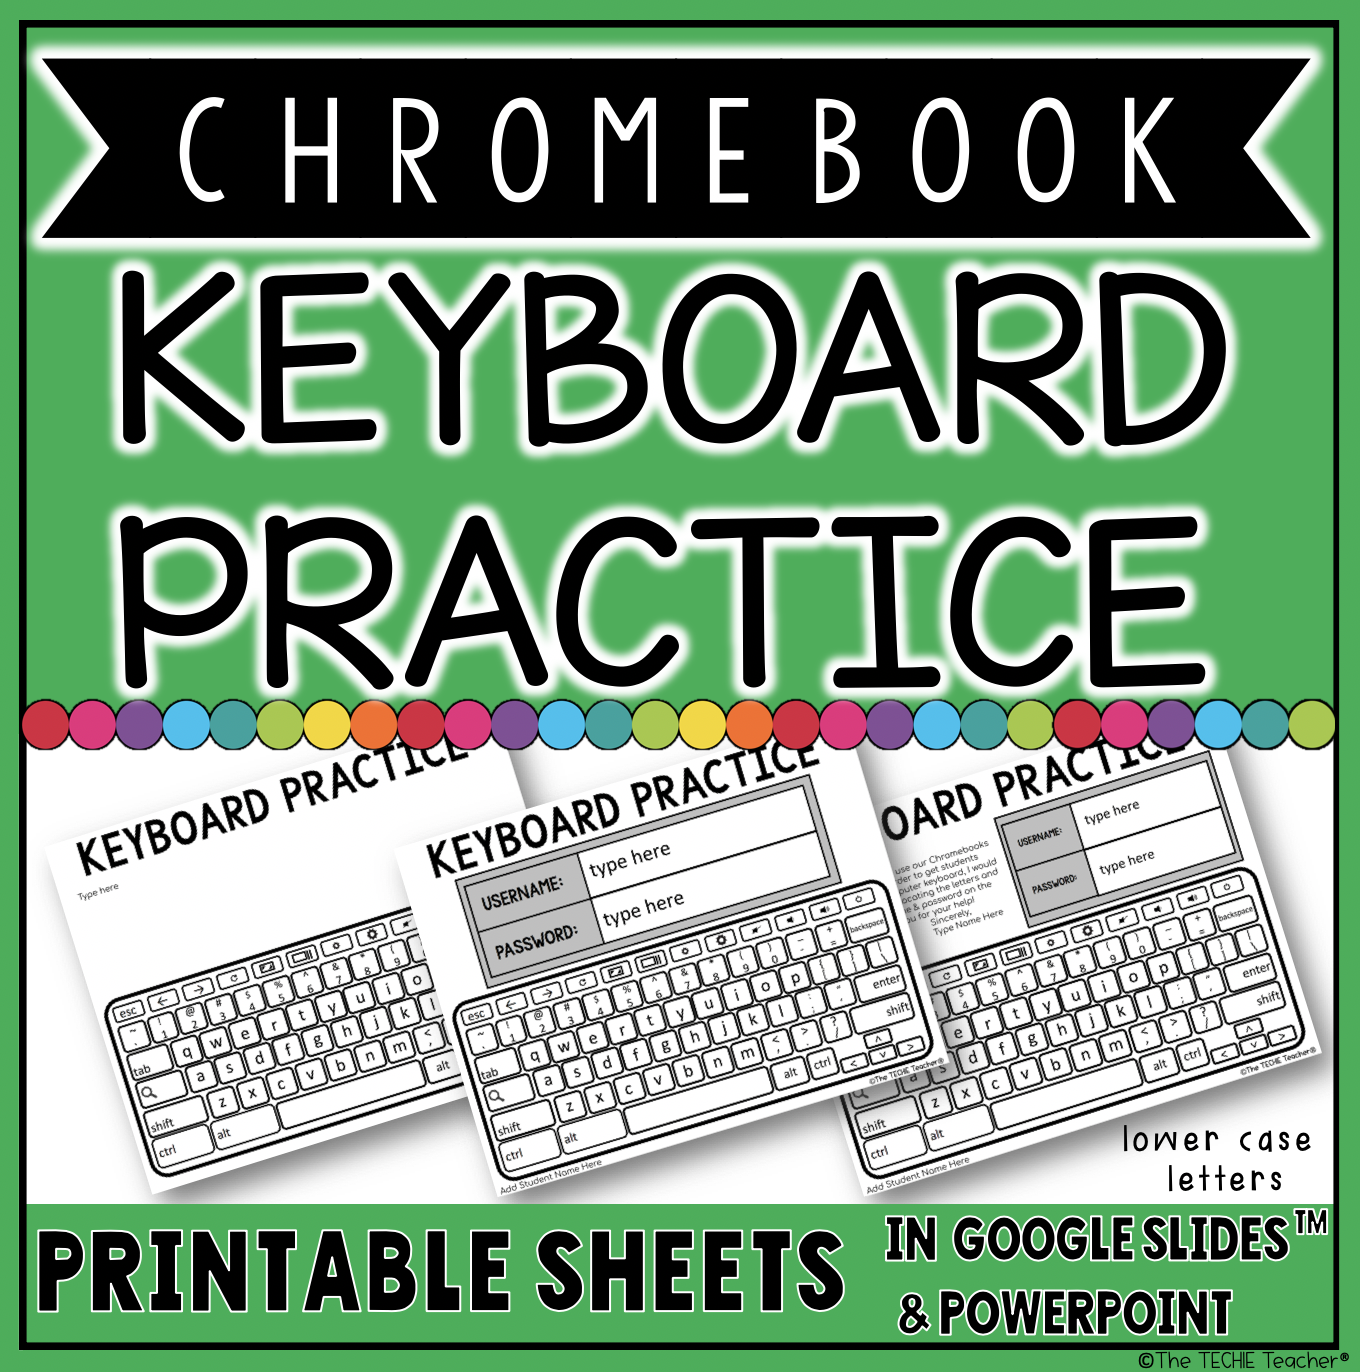 Chromebook Keyboard Practice: These printable sheets were created to help students practice their login information and to get acquainted with the Chromebook keyboard. Add whatever information you would like to these pages, print and send home with students to practice.